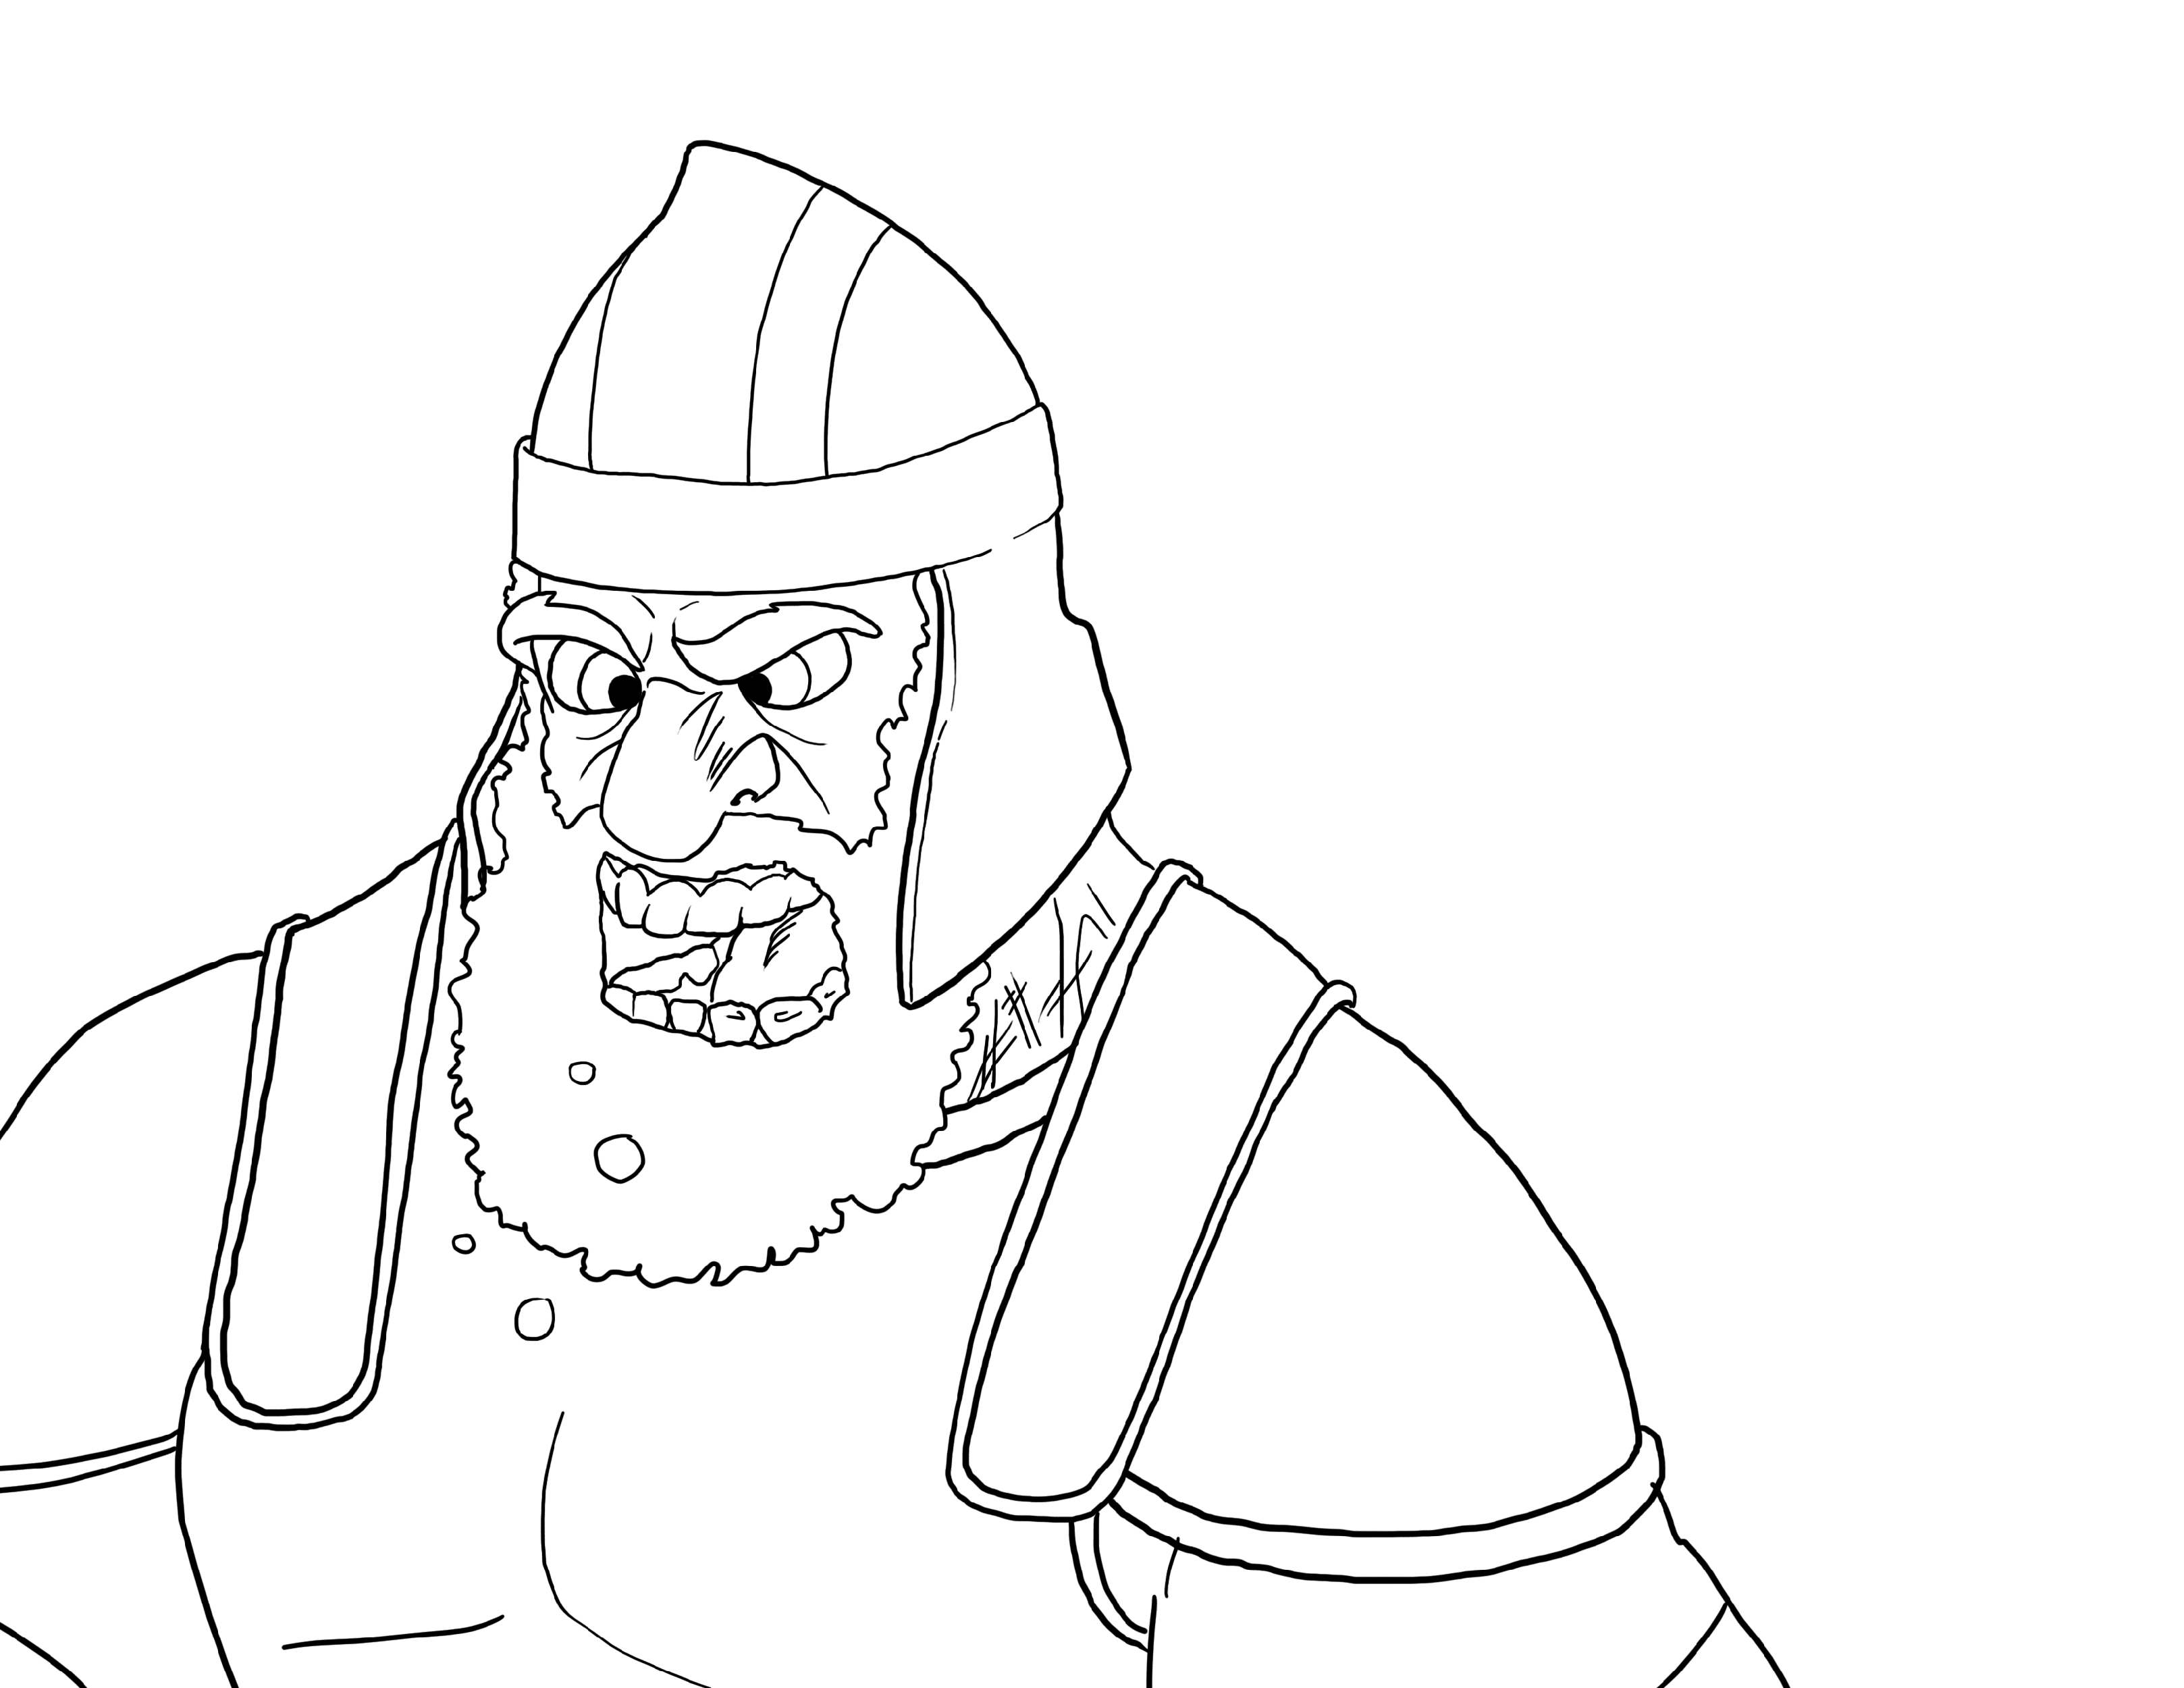 david and goliath coloring page face